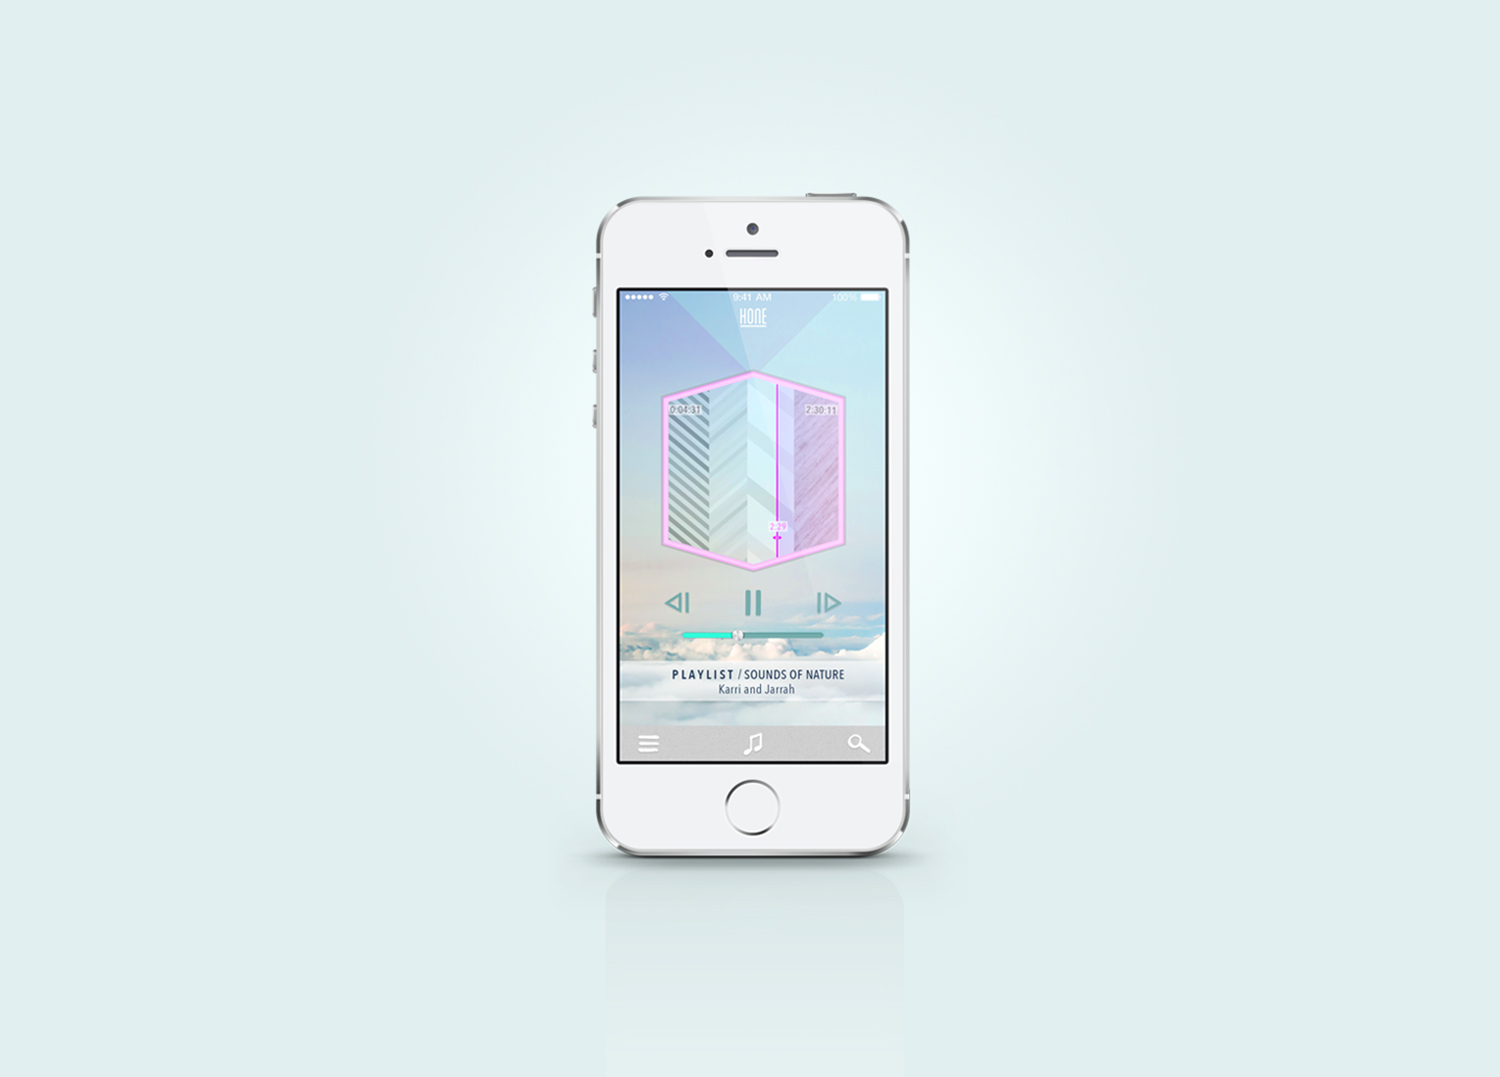 Graphic Design, user interface design music media player app, features cloud background and pastel geometric shapes.